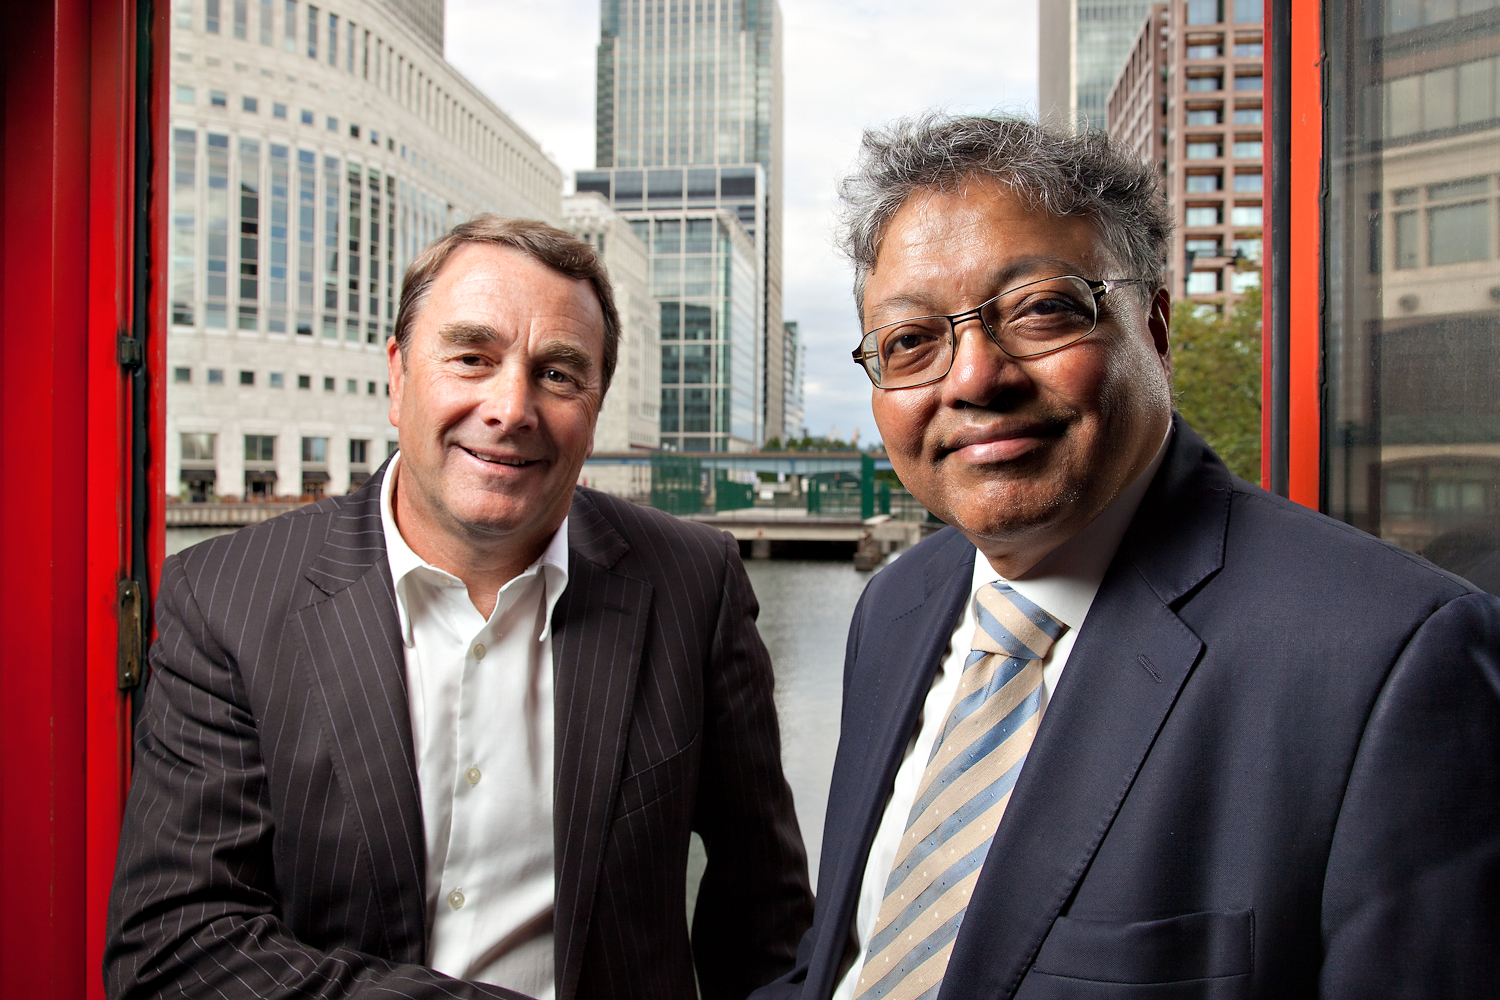 Nigel Mansell, President of the charity UK Youth, with Mihir Bose, journalist